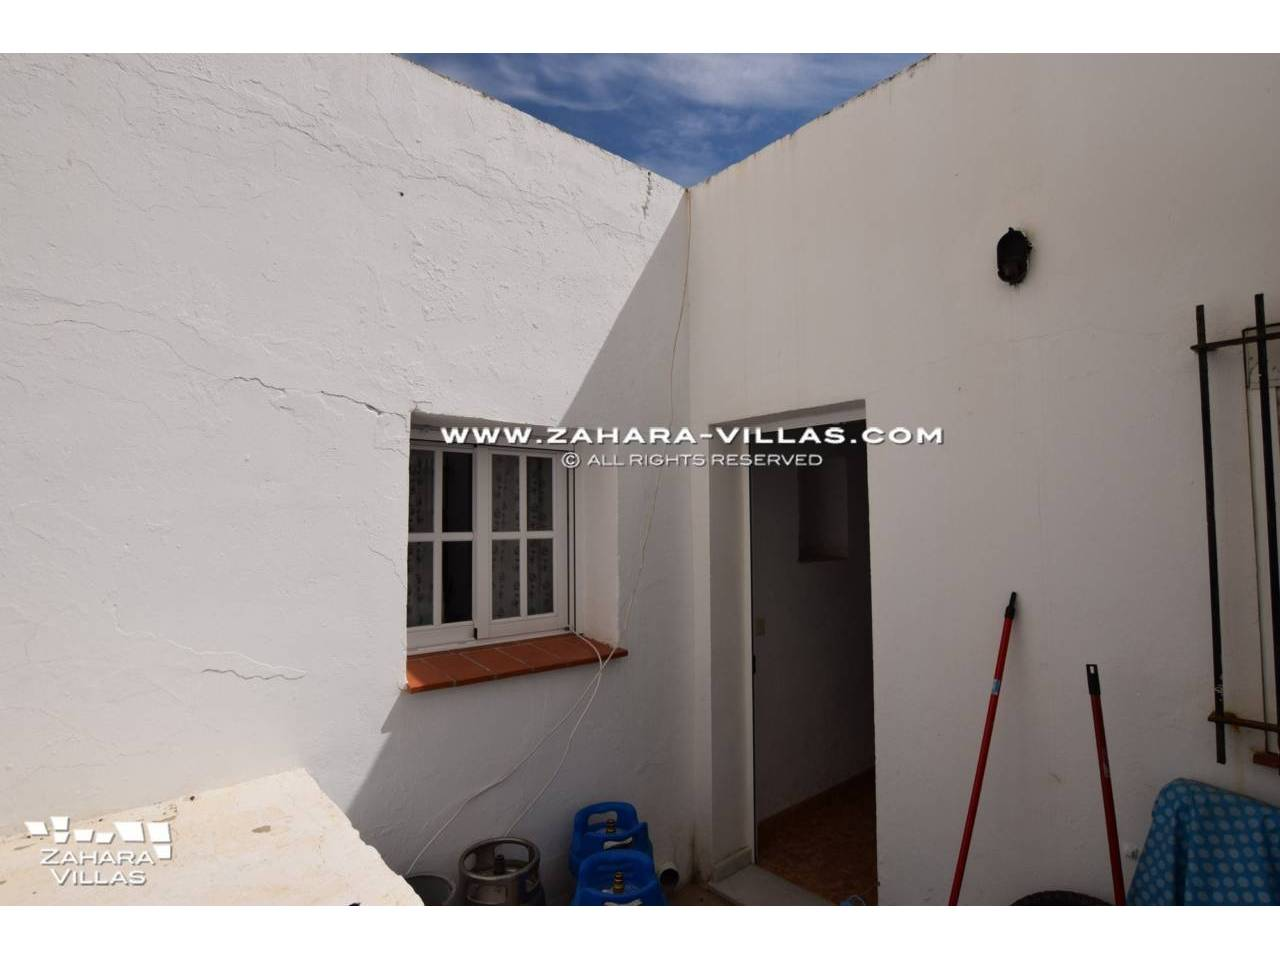 Imagen 11 de House in Avda. Del Pradillo for sale in the town of Zahara de los Atunes